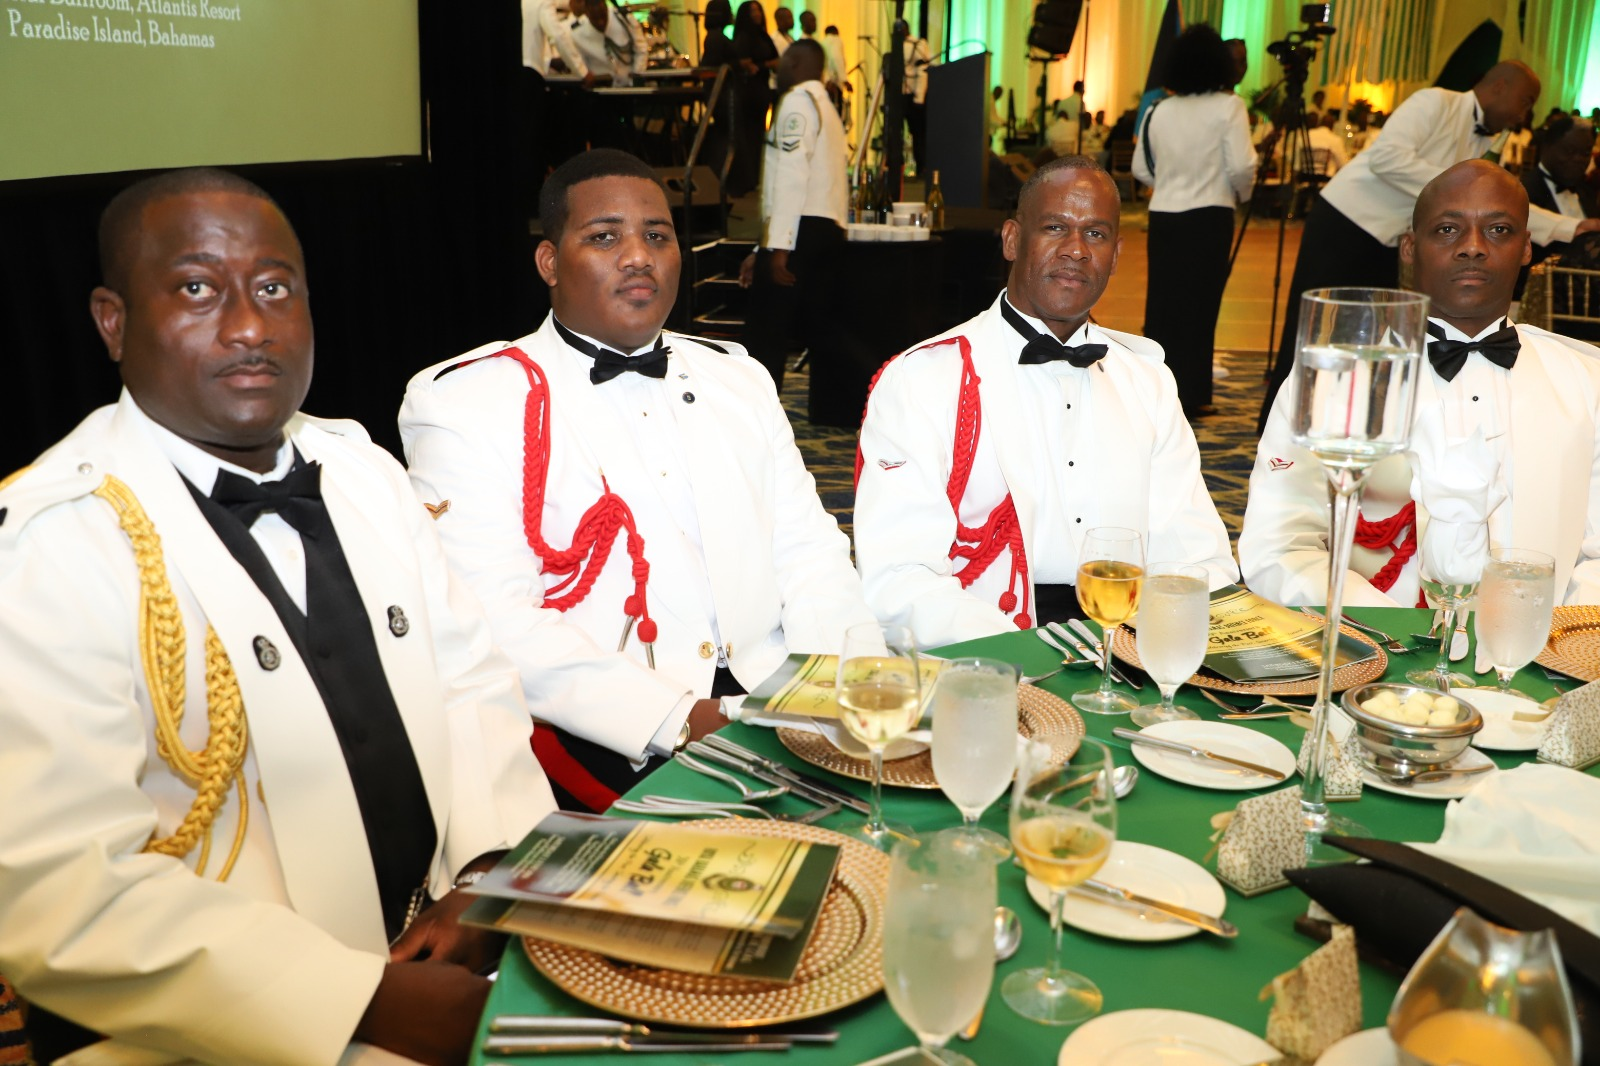 Members of the Police Force at the Annual Military Ball on June 1st.